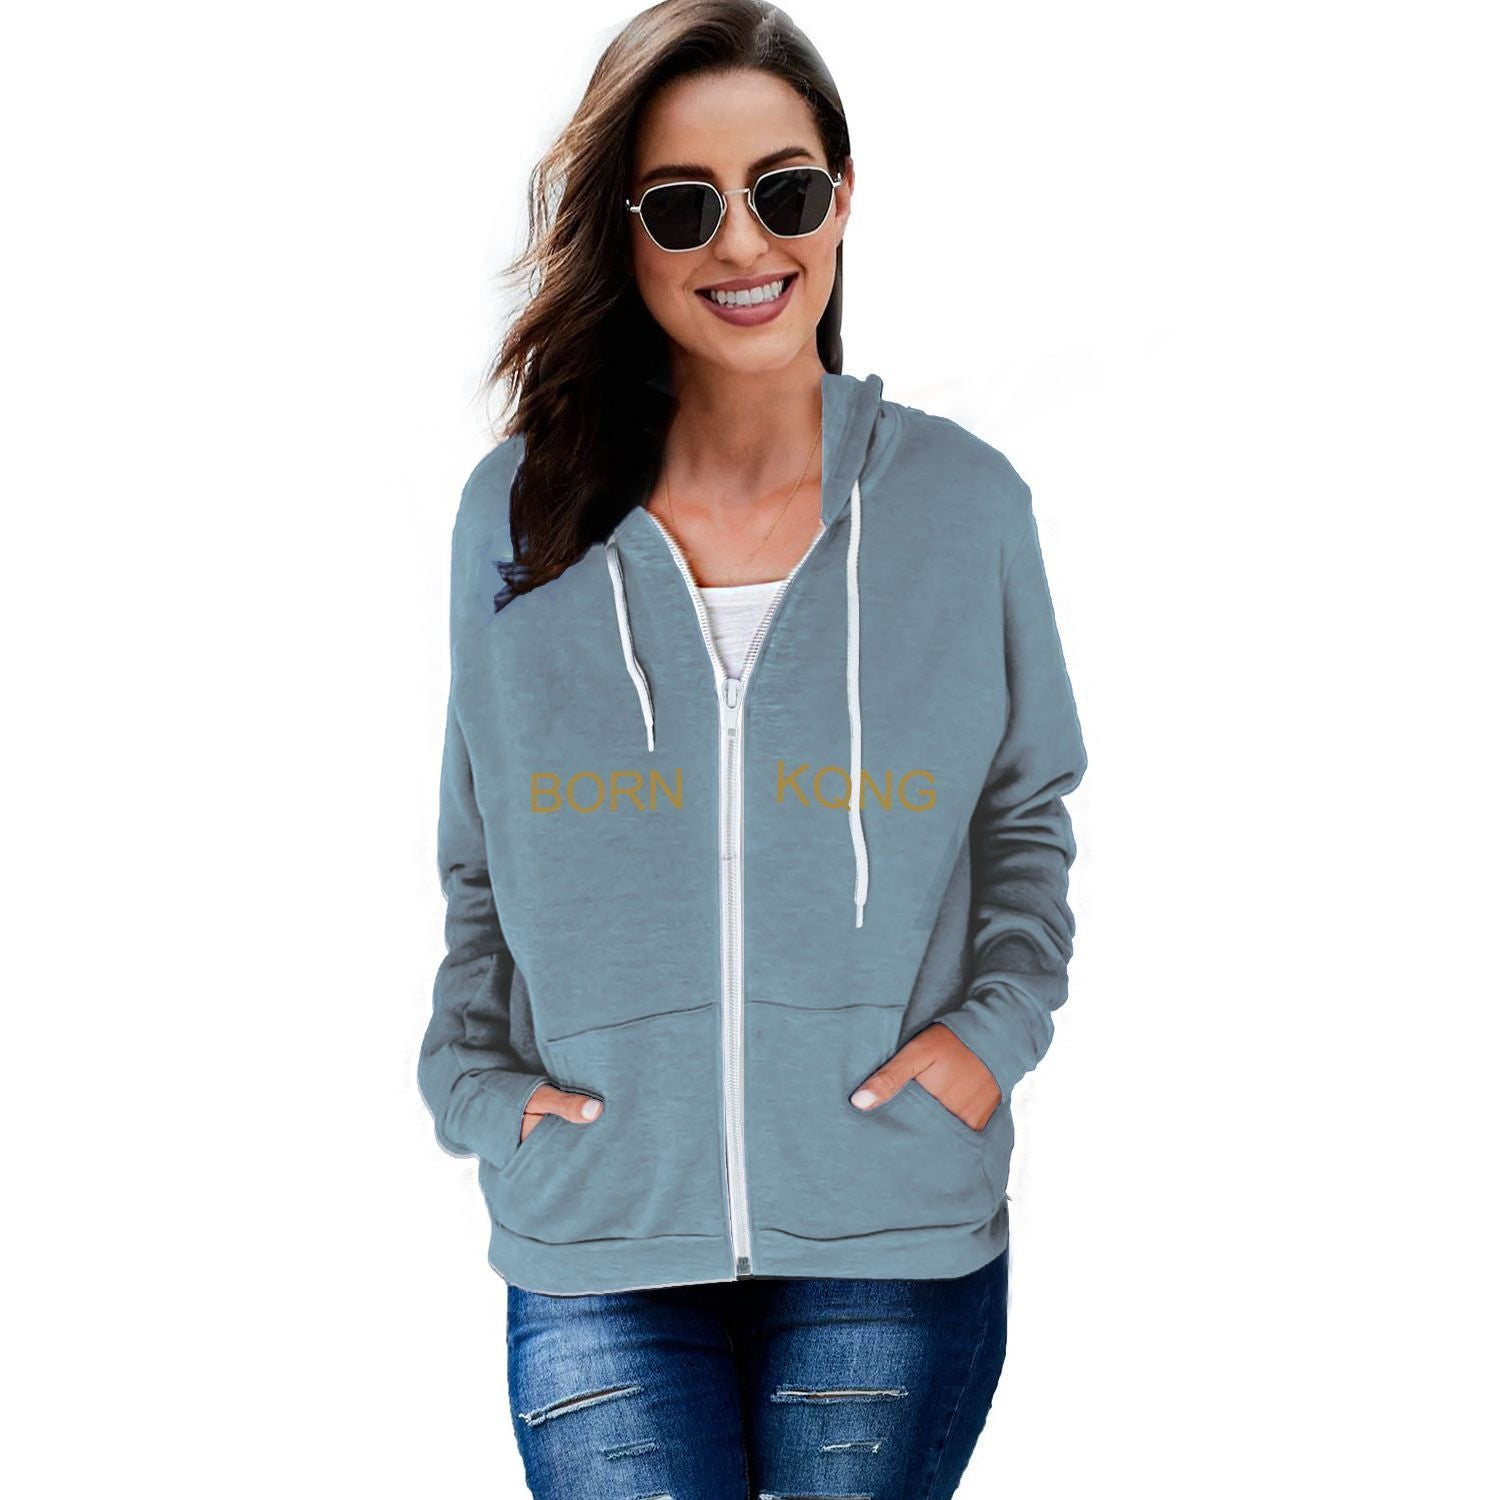 KQROWN'D APPAREL - LOWRIDER Edition - Women's Zip Hoodie - KQROWN'D APPAREL